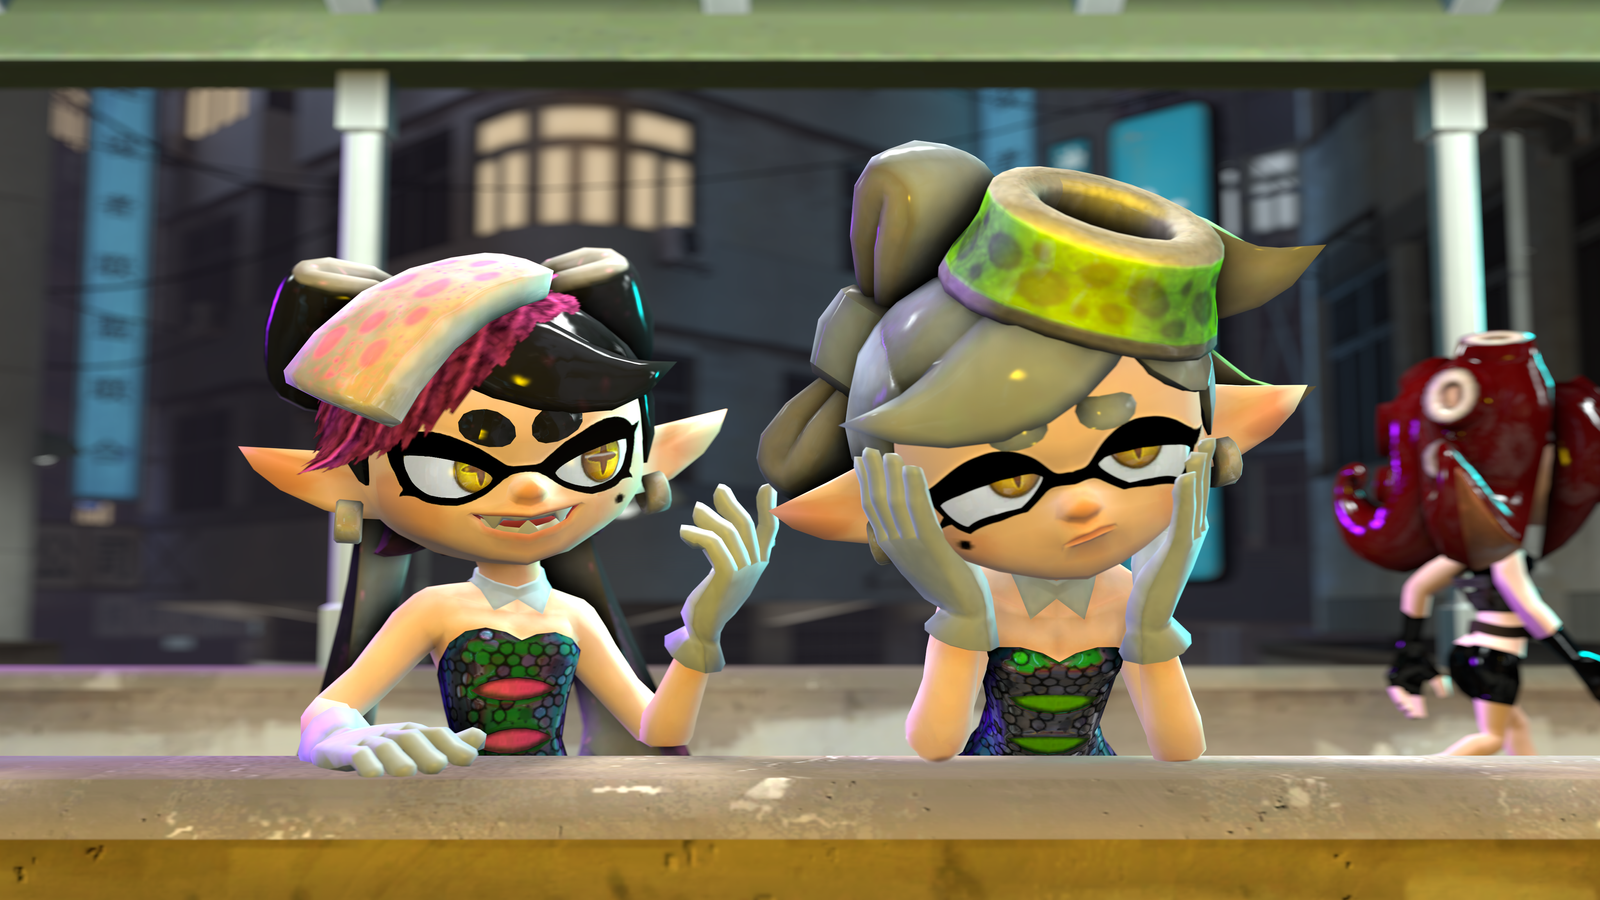 Callie And Marie Wallpaper: Callie And Marie (SFM) By Slava13 On DeviantArt